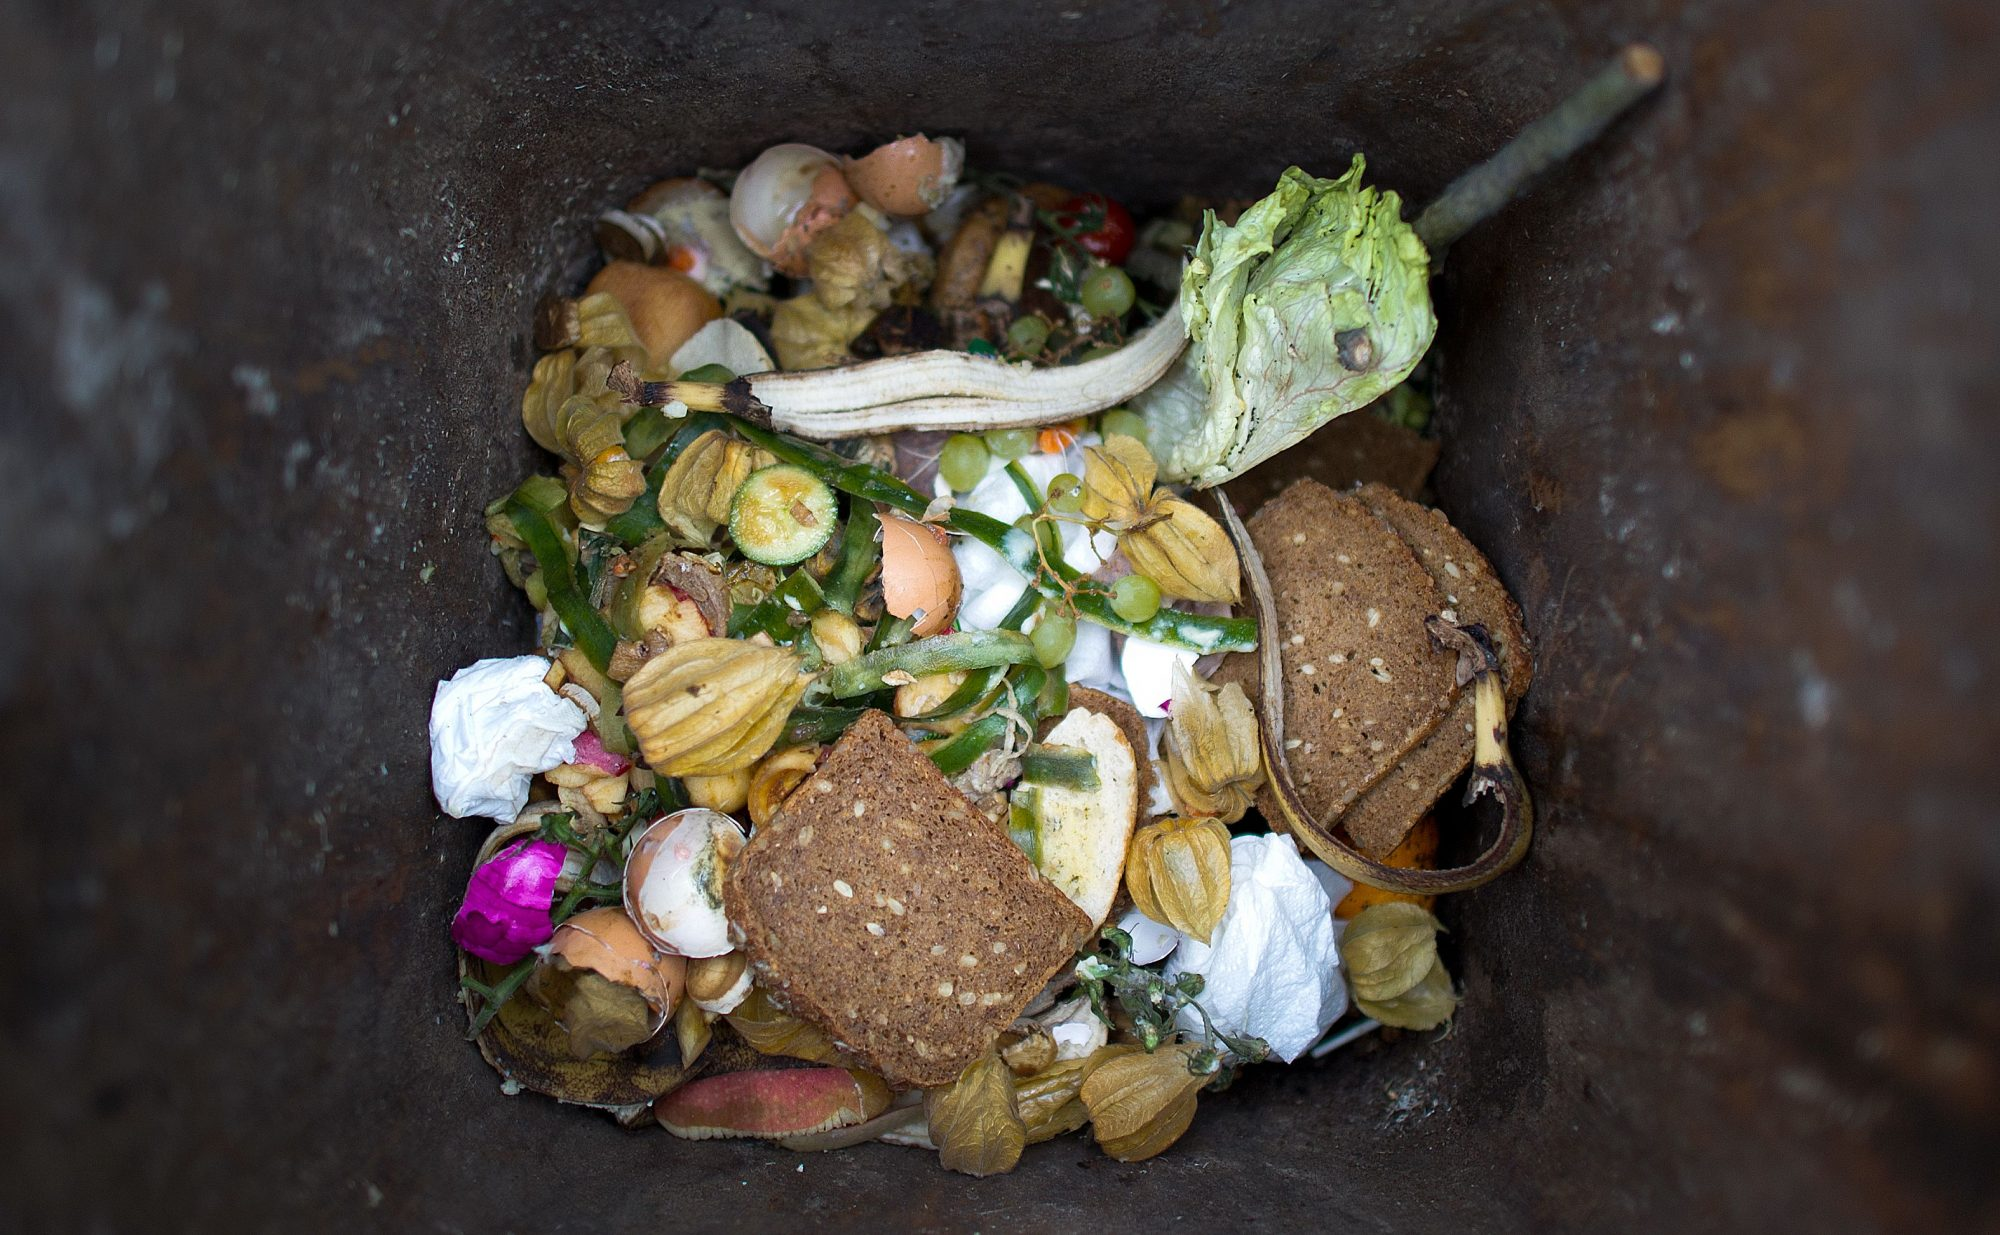 GERMANY-POLITICS-FOOD-WASTE